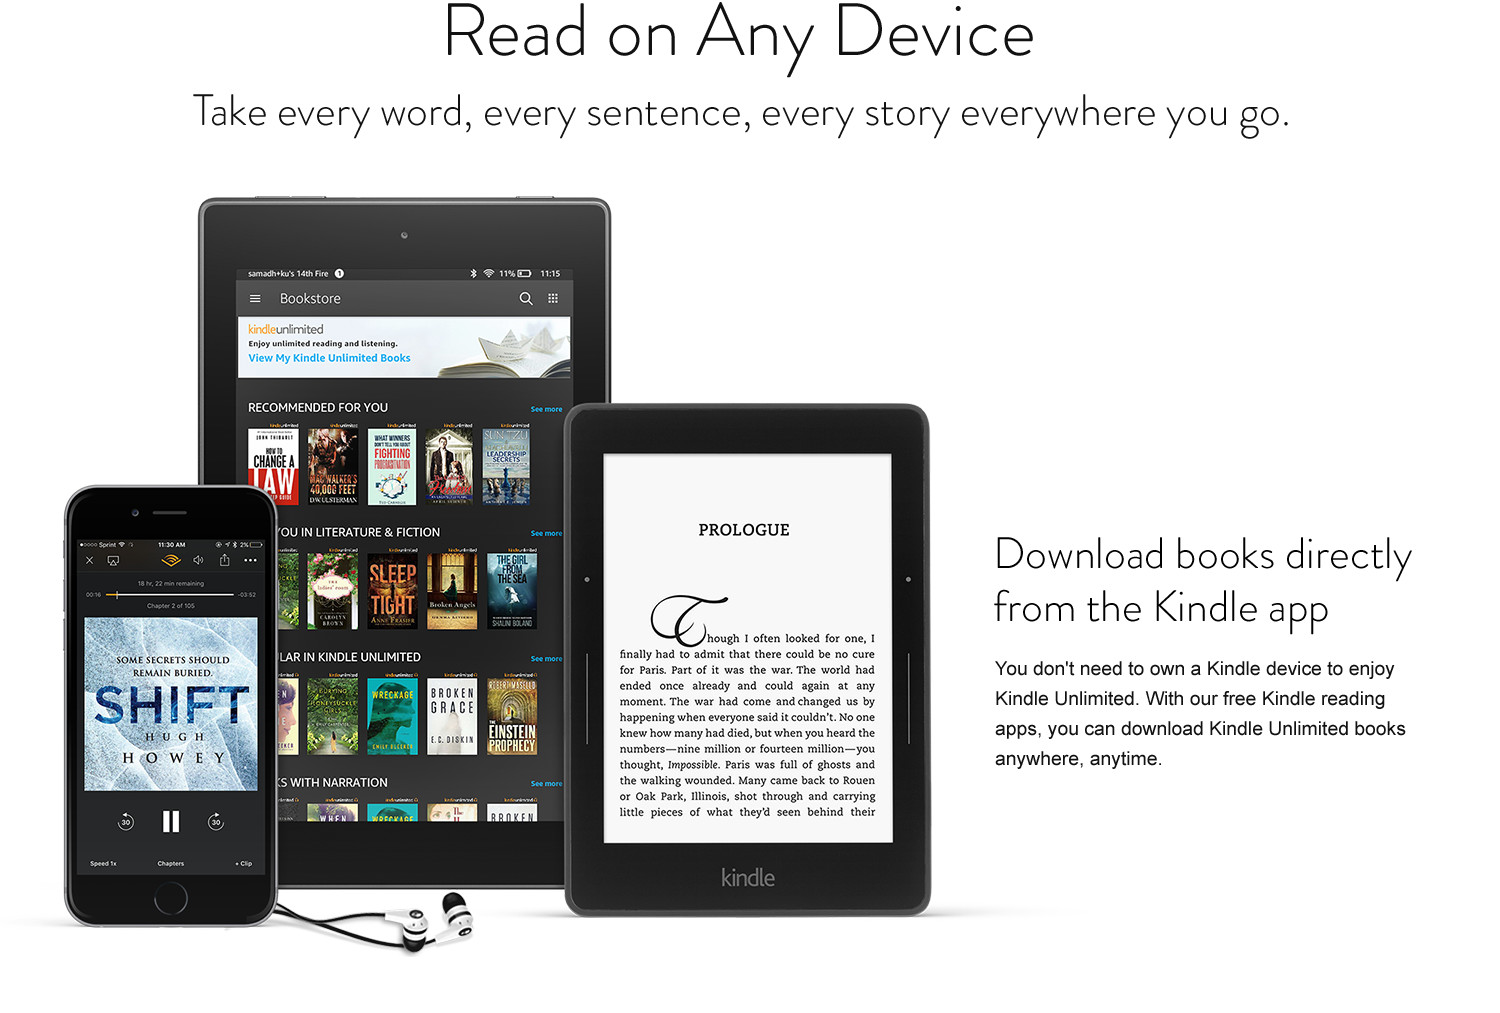 Read on any device: take every word, every sentence, every story everywhere you go. Download books directly from the Kindle app. You don't need to own a Kindle device to enjoy Kindle Unlimited. With our free Kindle reading apps, you can download Kindle Unlimited books anywhere, any time.